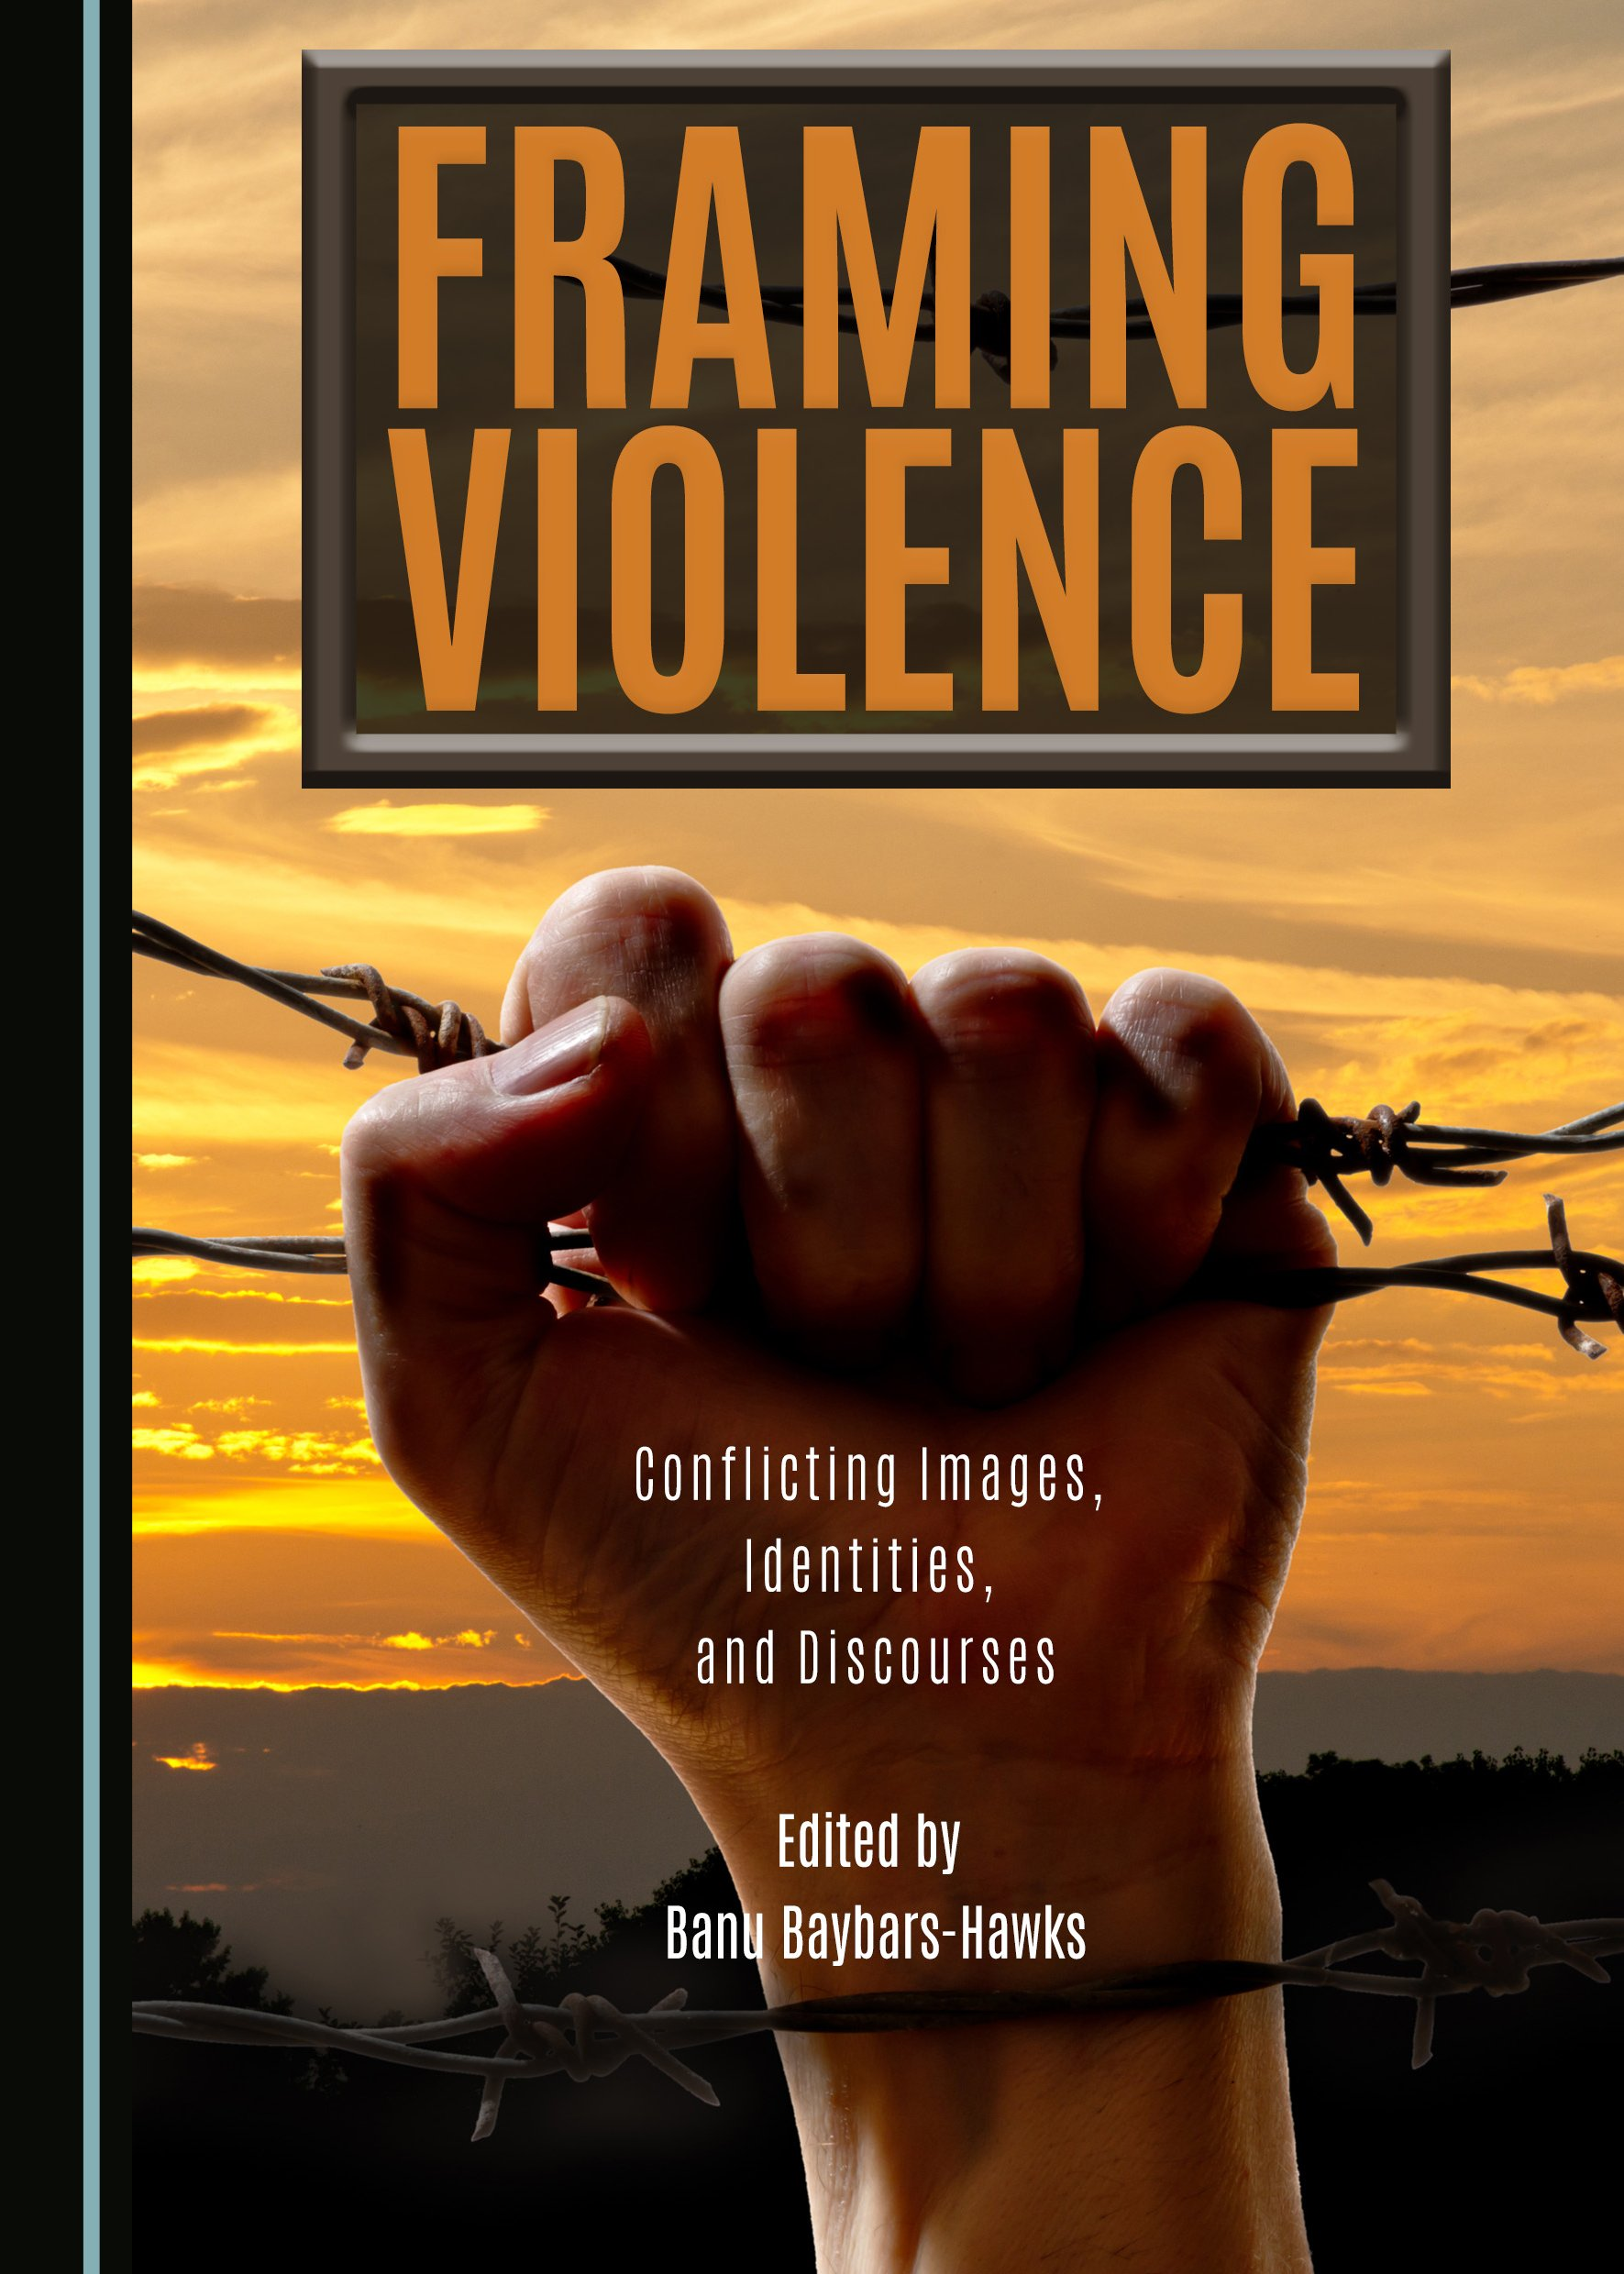 Framing Violence: Conflicting Images, Identities, and Discourses